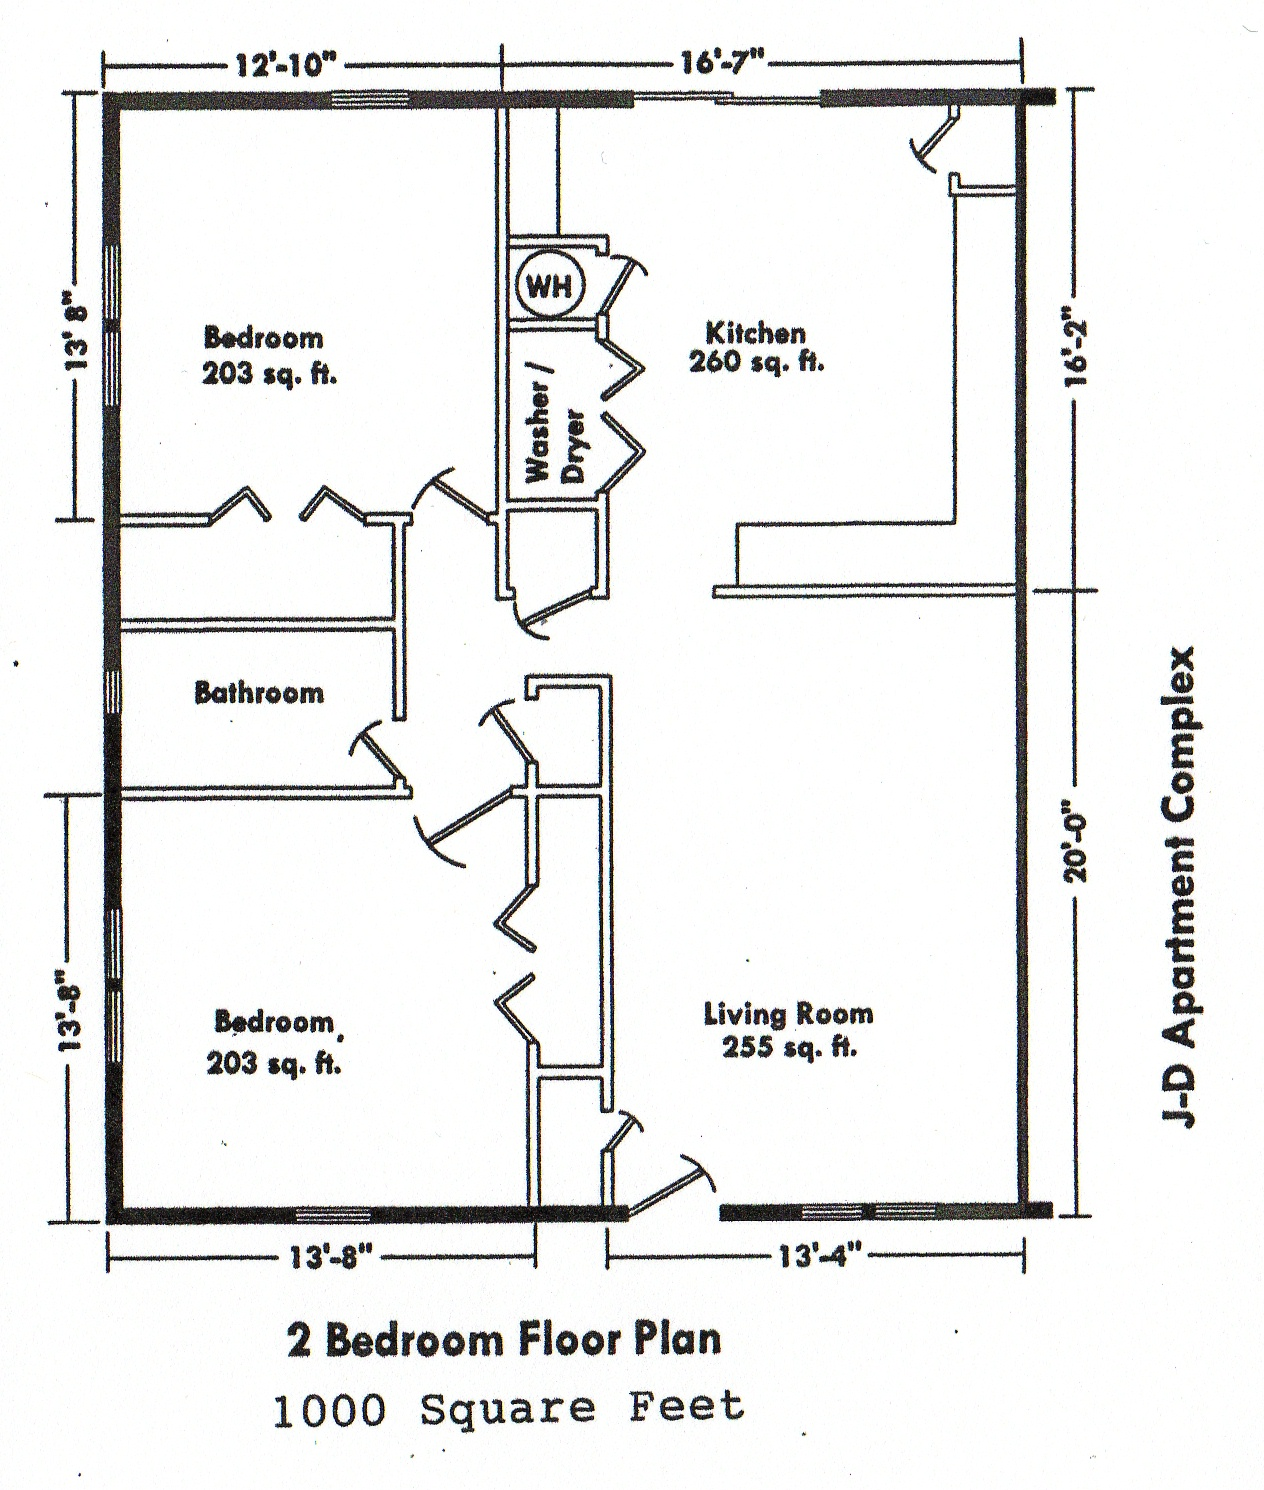 Immaculate Master Bedroom Addition Plans | Marvelous First Floor Master Bedroom Addition Plans